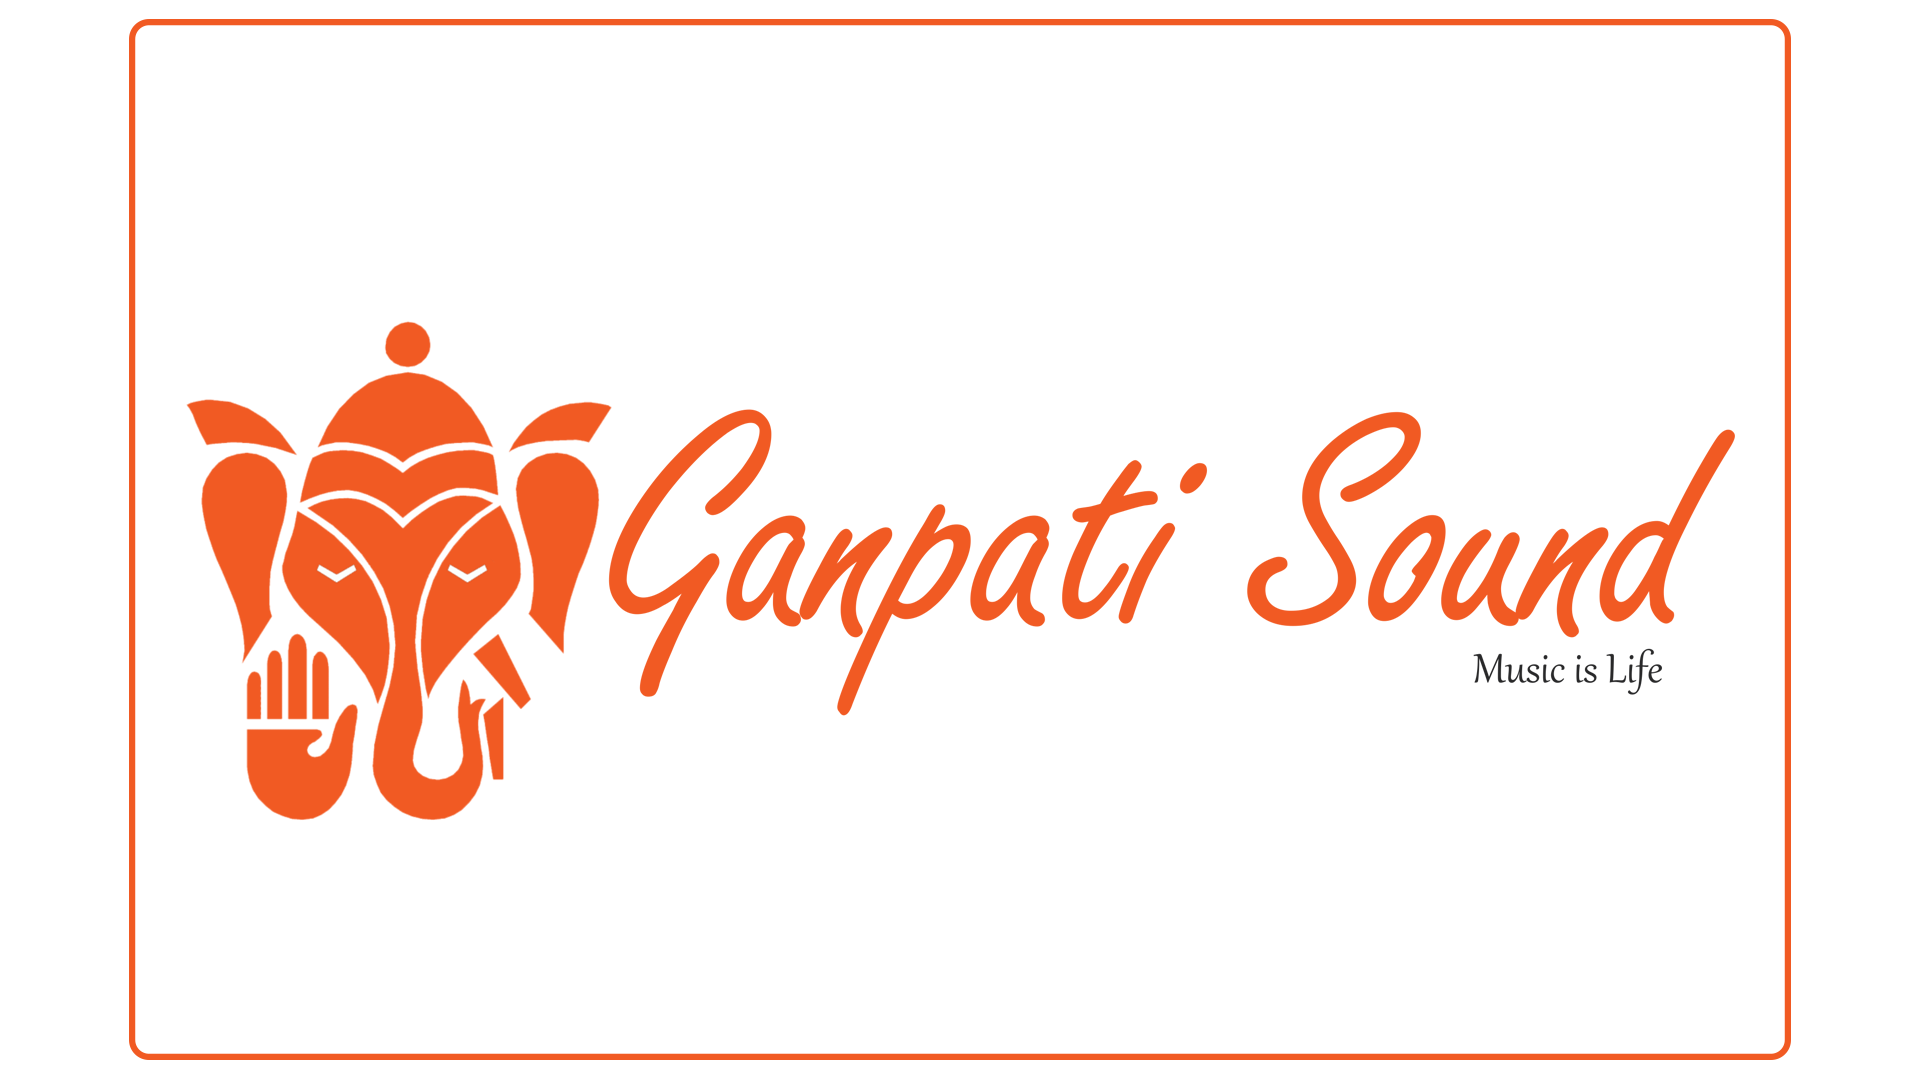 Ganpati Sounds